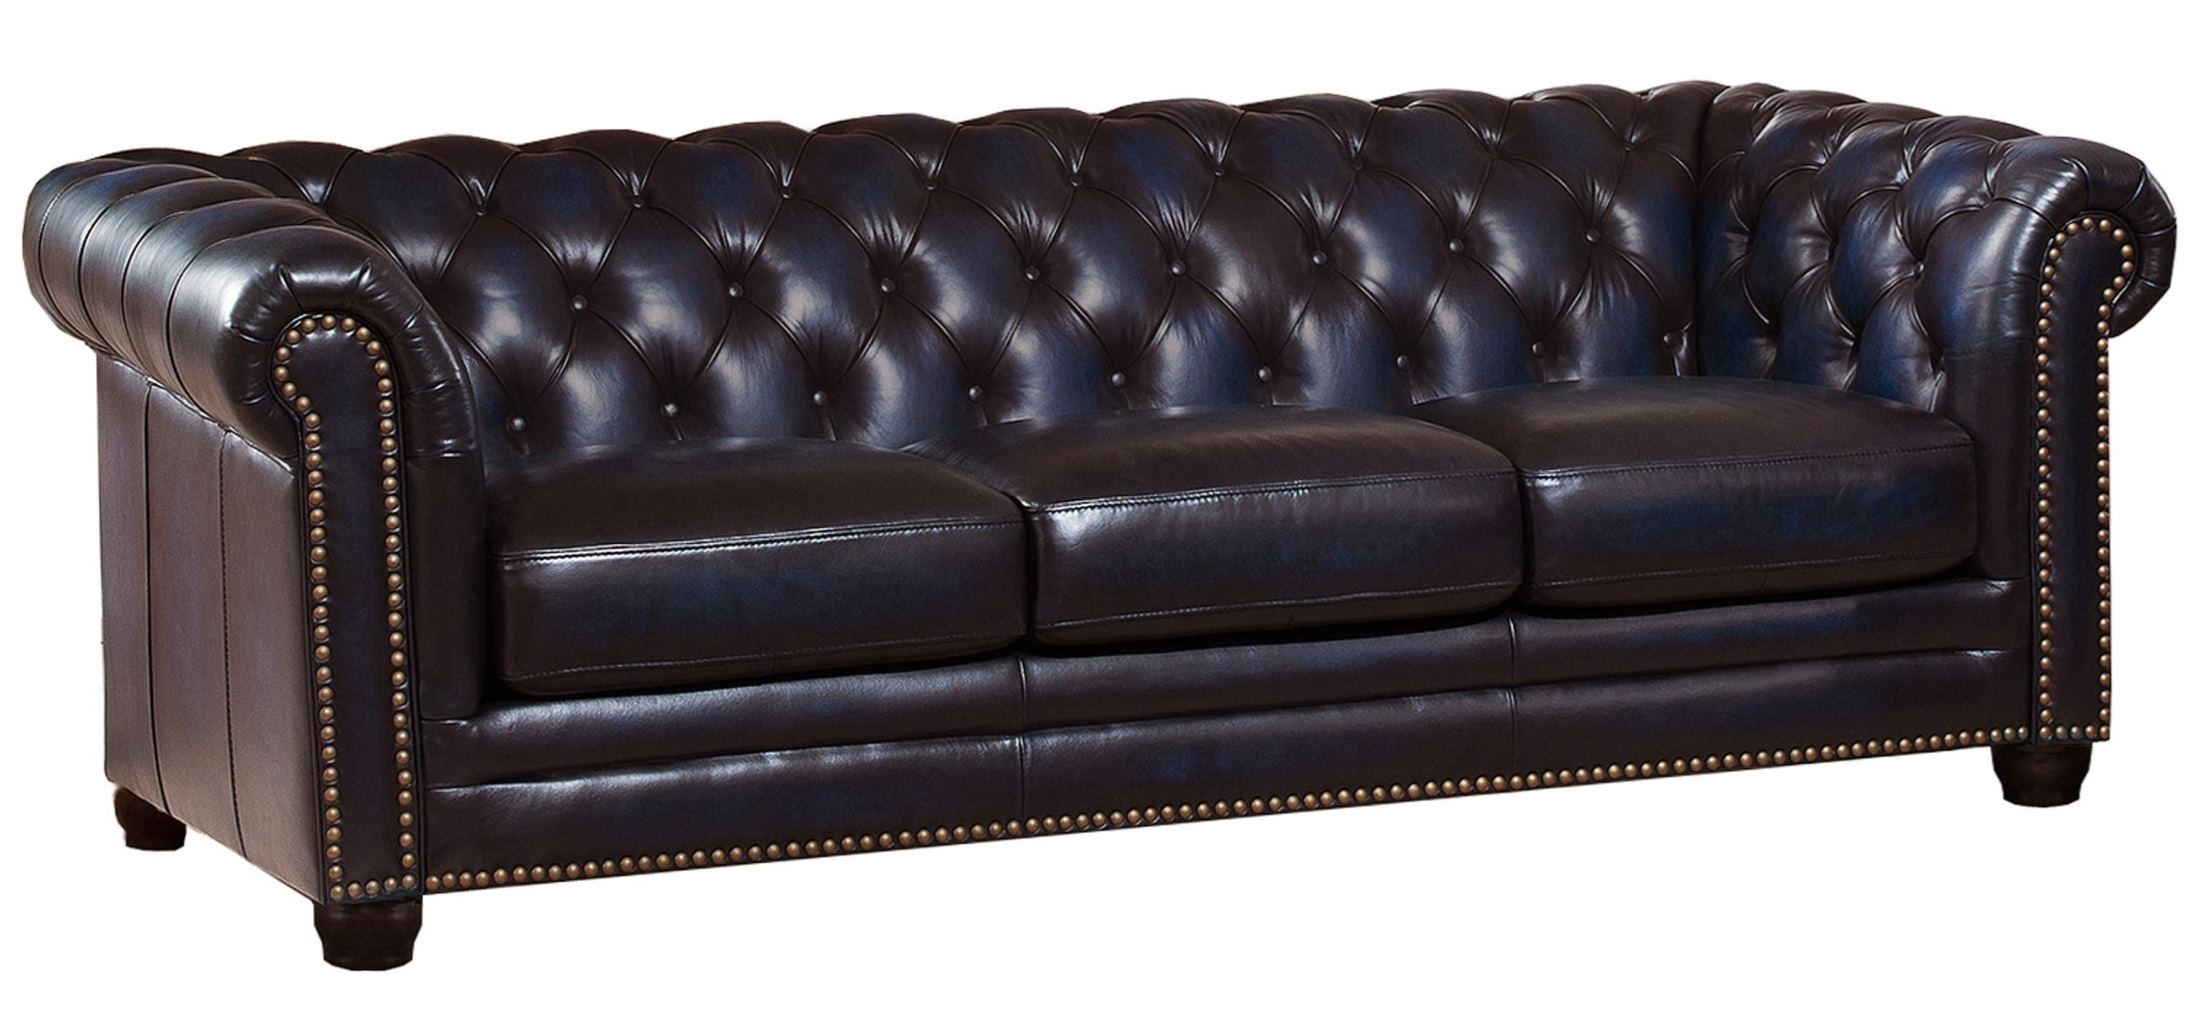 dynasty navy blue leather sofa from amax leather coleman